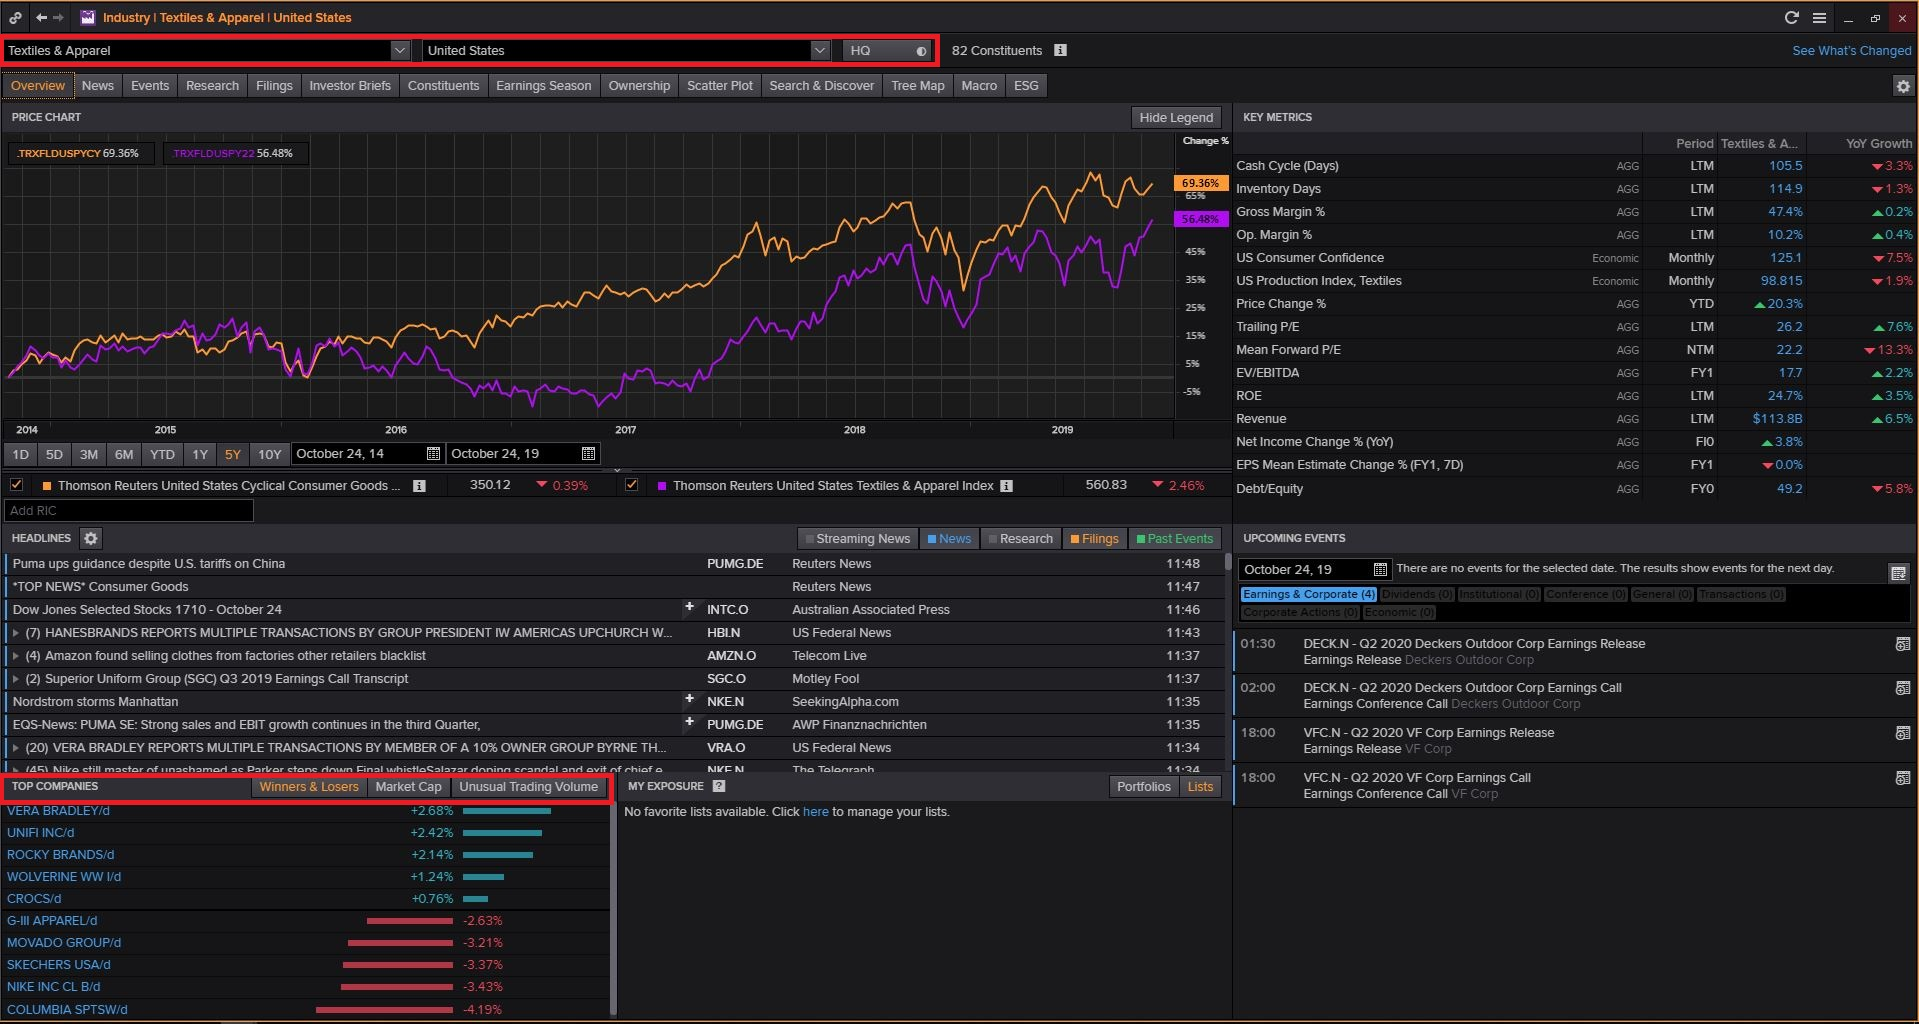 Login to Thomson Reuters Eikon (Available Only in Library) then Type INDUS and Search and Select Consumer Cyclicals and Click on Cyclical Consumer Products and Click on Textiles & Apparel and Select Country and Click on Top Companies